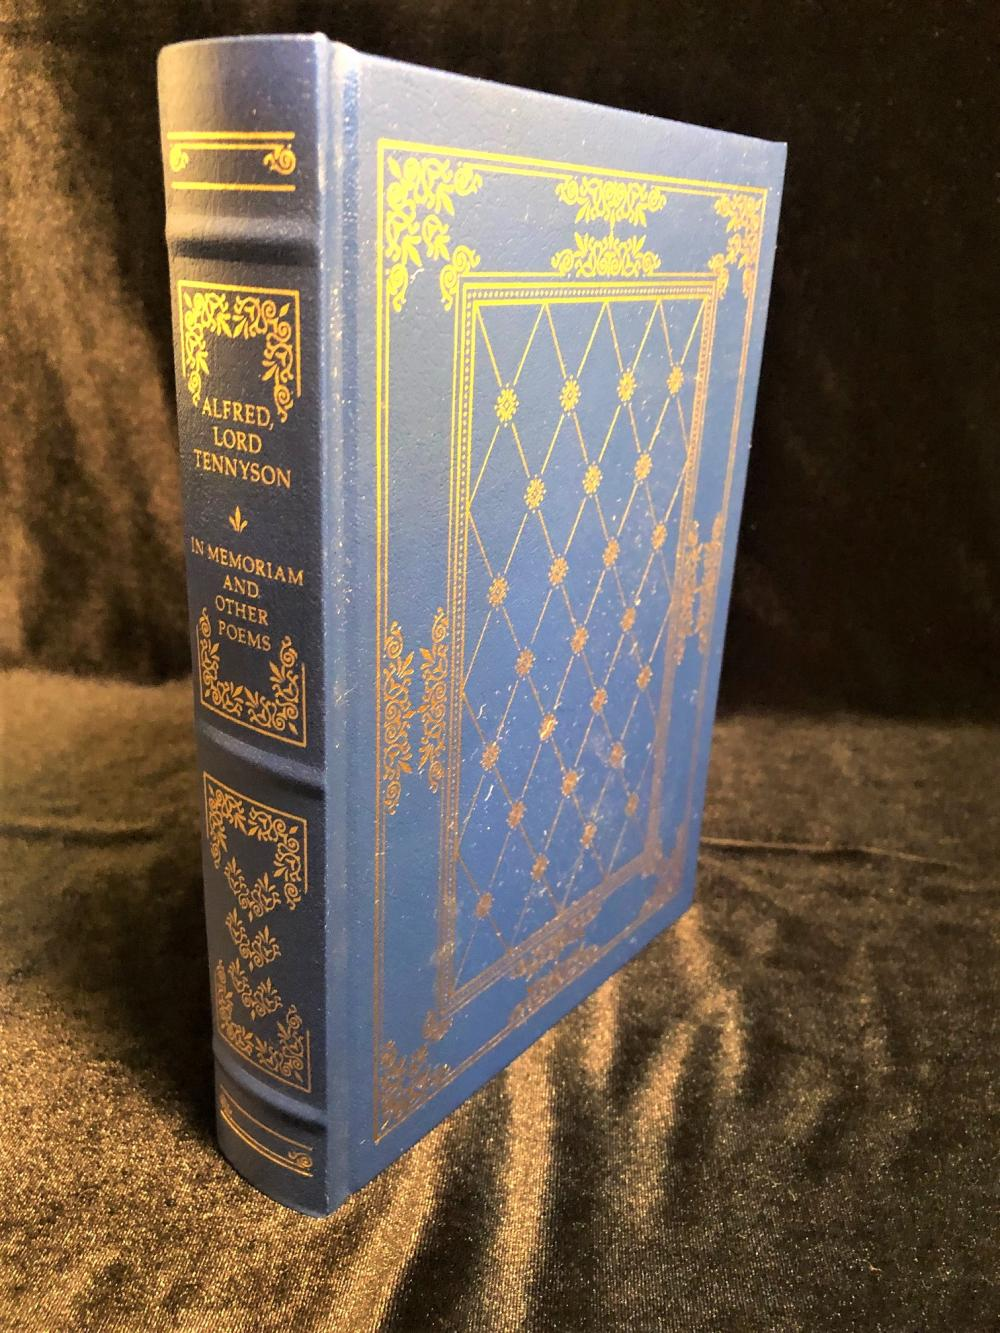 Lot - ALFRED LORD TENNYSON - IN MEMORIAM AND OTHER POEMS ...